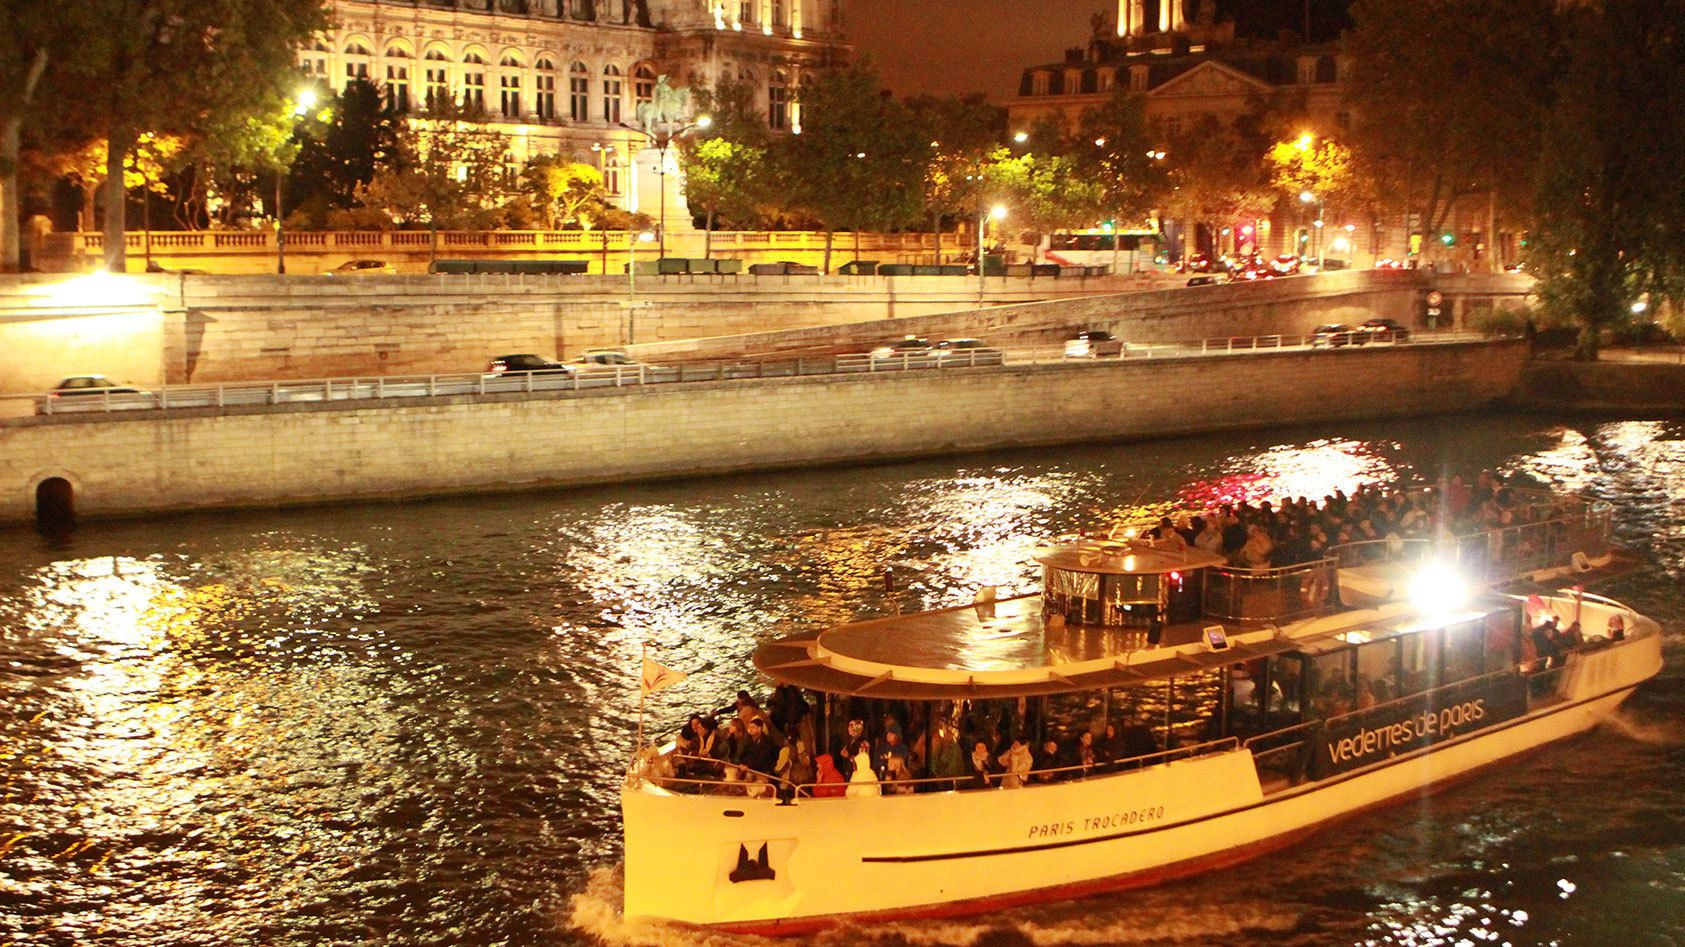 Sailing down the Seine at night.